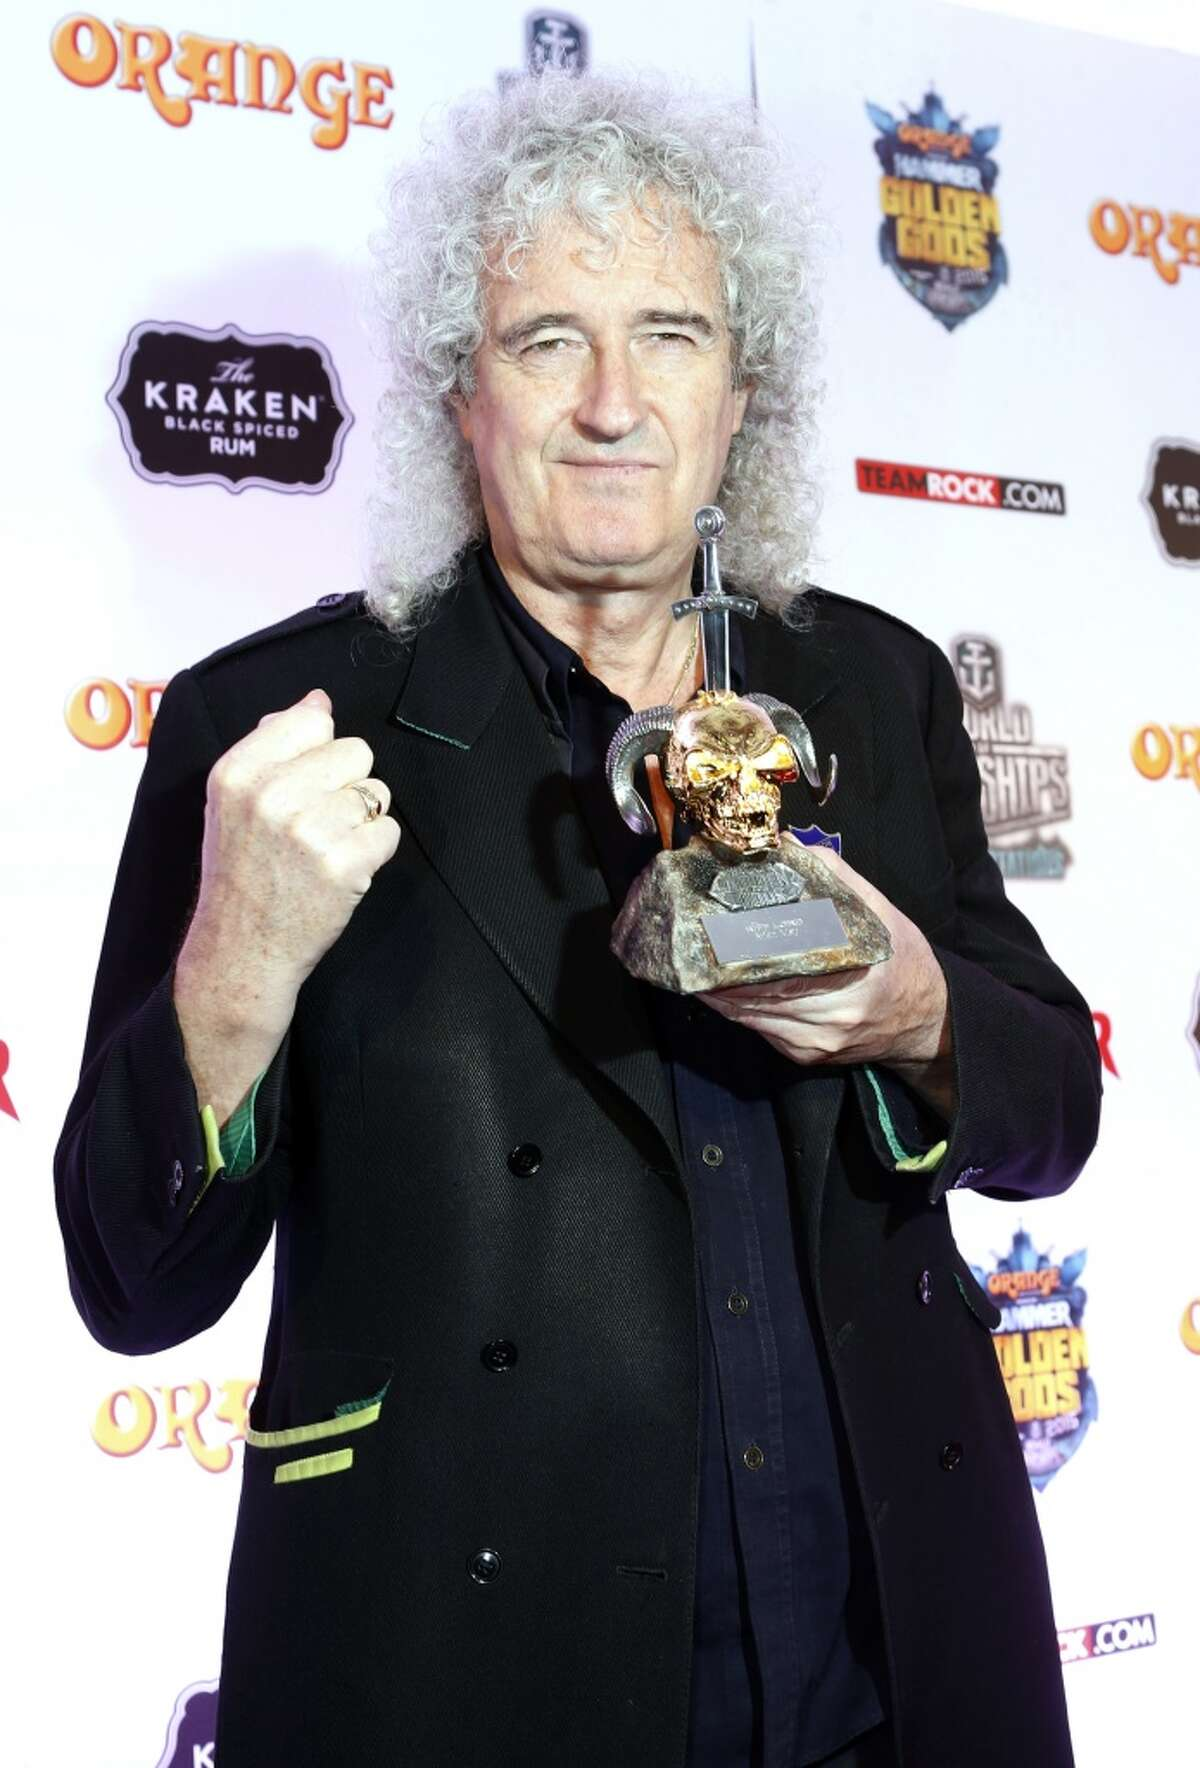 It might have taken him 30 years to complete it, but Queen's Brian May received his doctorate in astrophysics from Imperial College London.